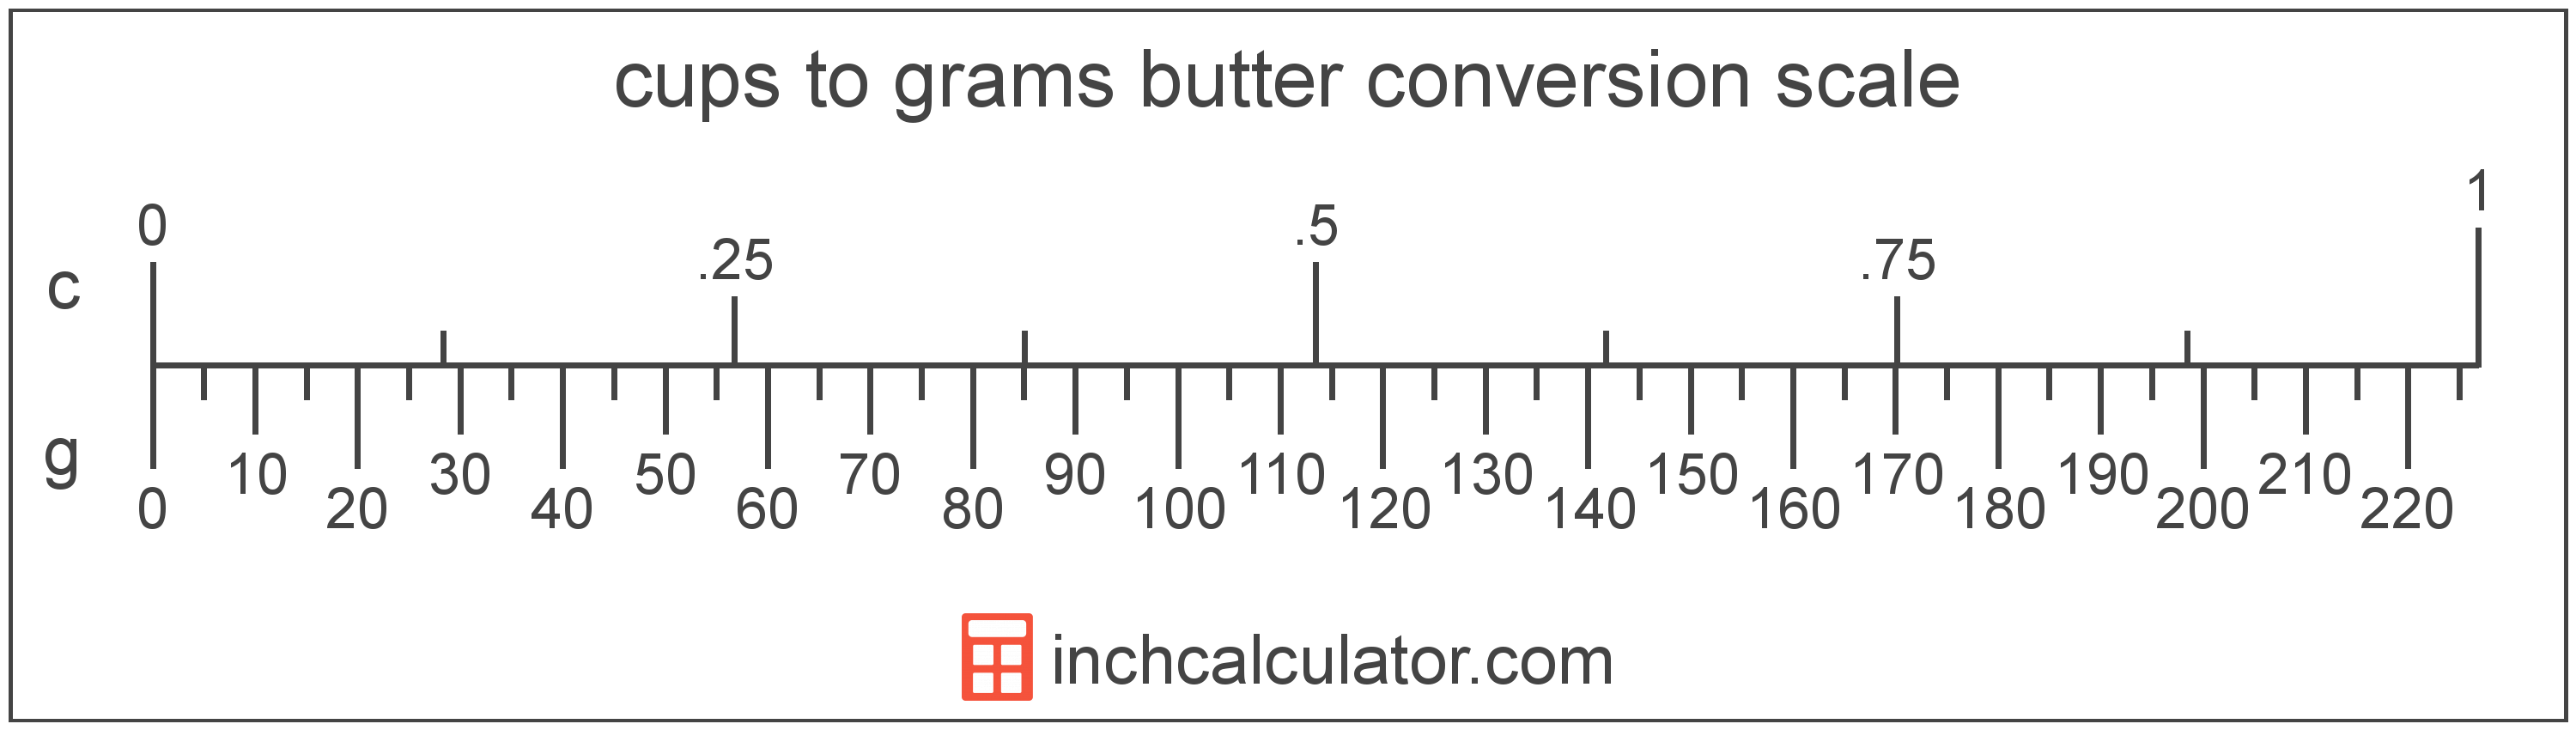 conversion scale showing cups and equivalent grams butter values